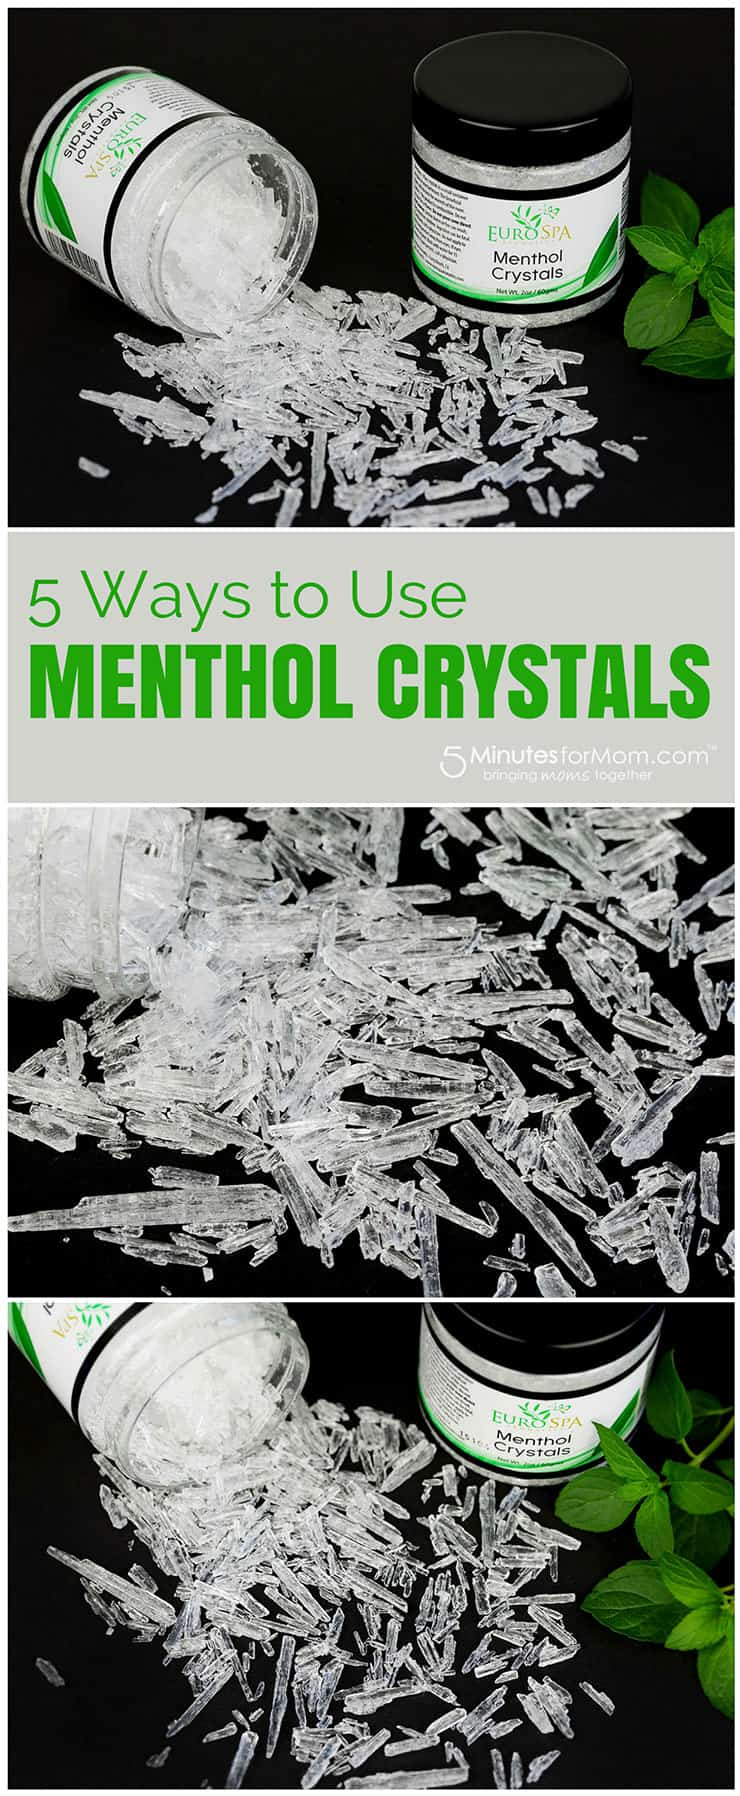 Menthol Crystals Uses